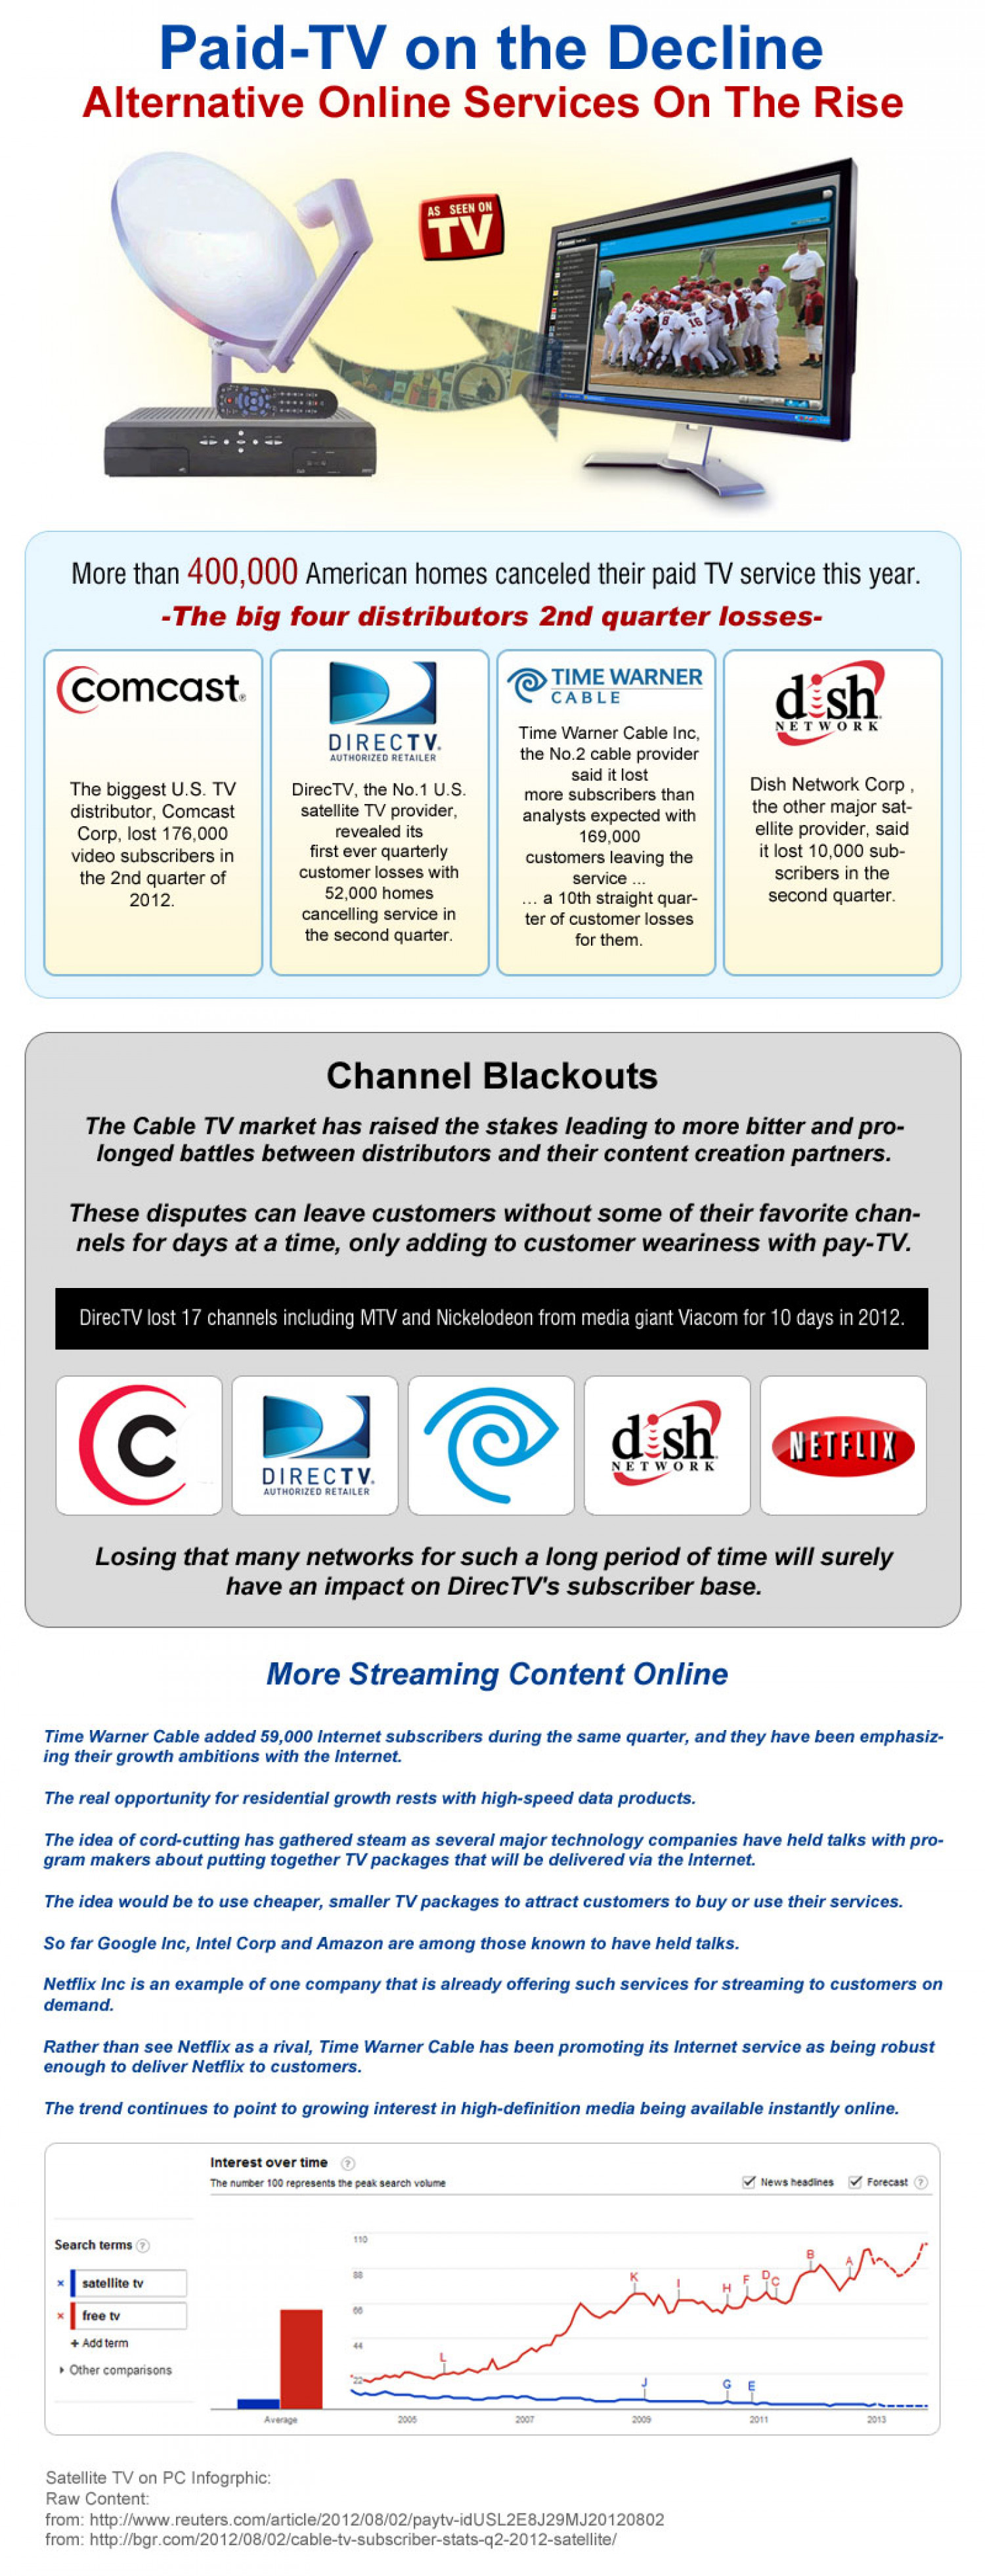 Satelite TV for PC Infographic